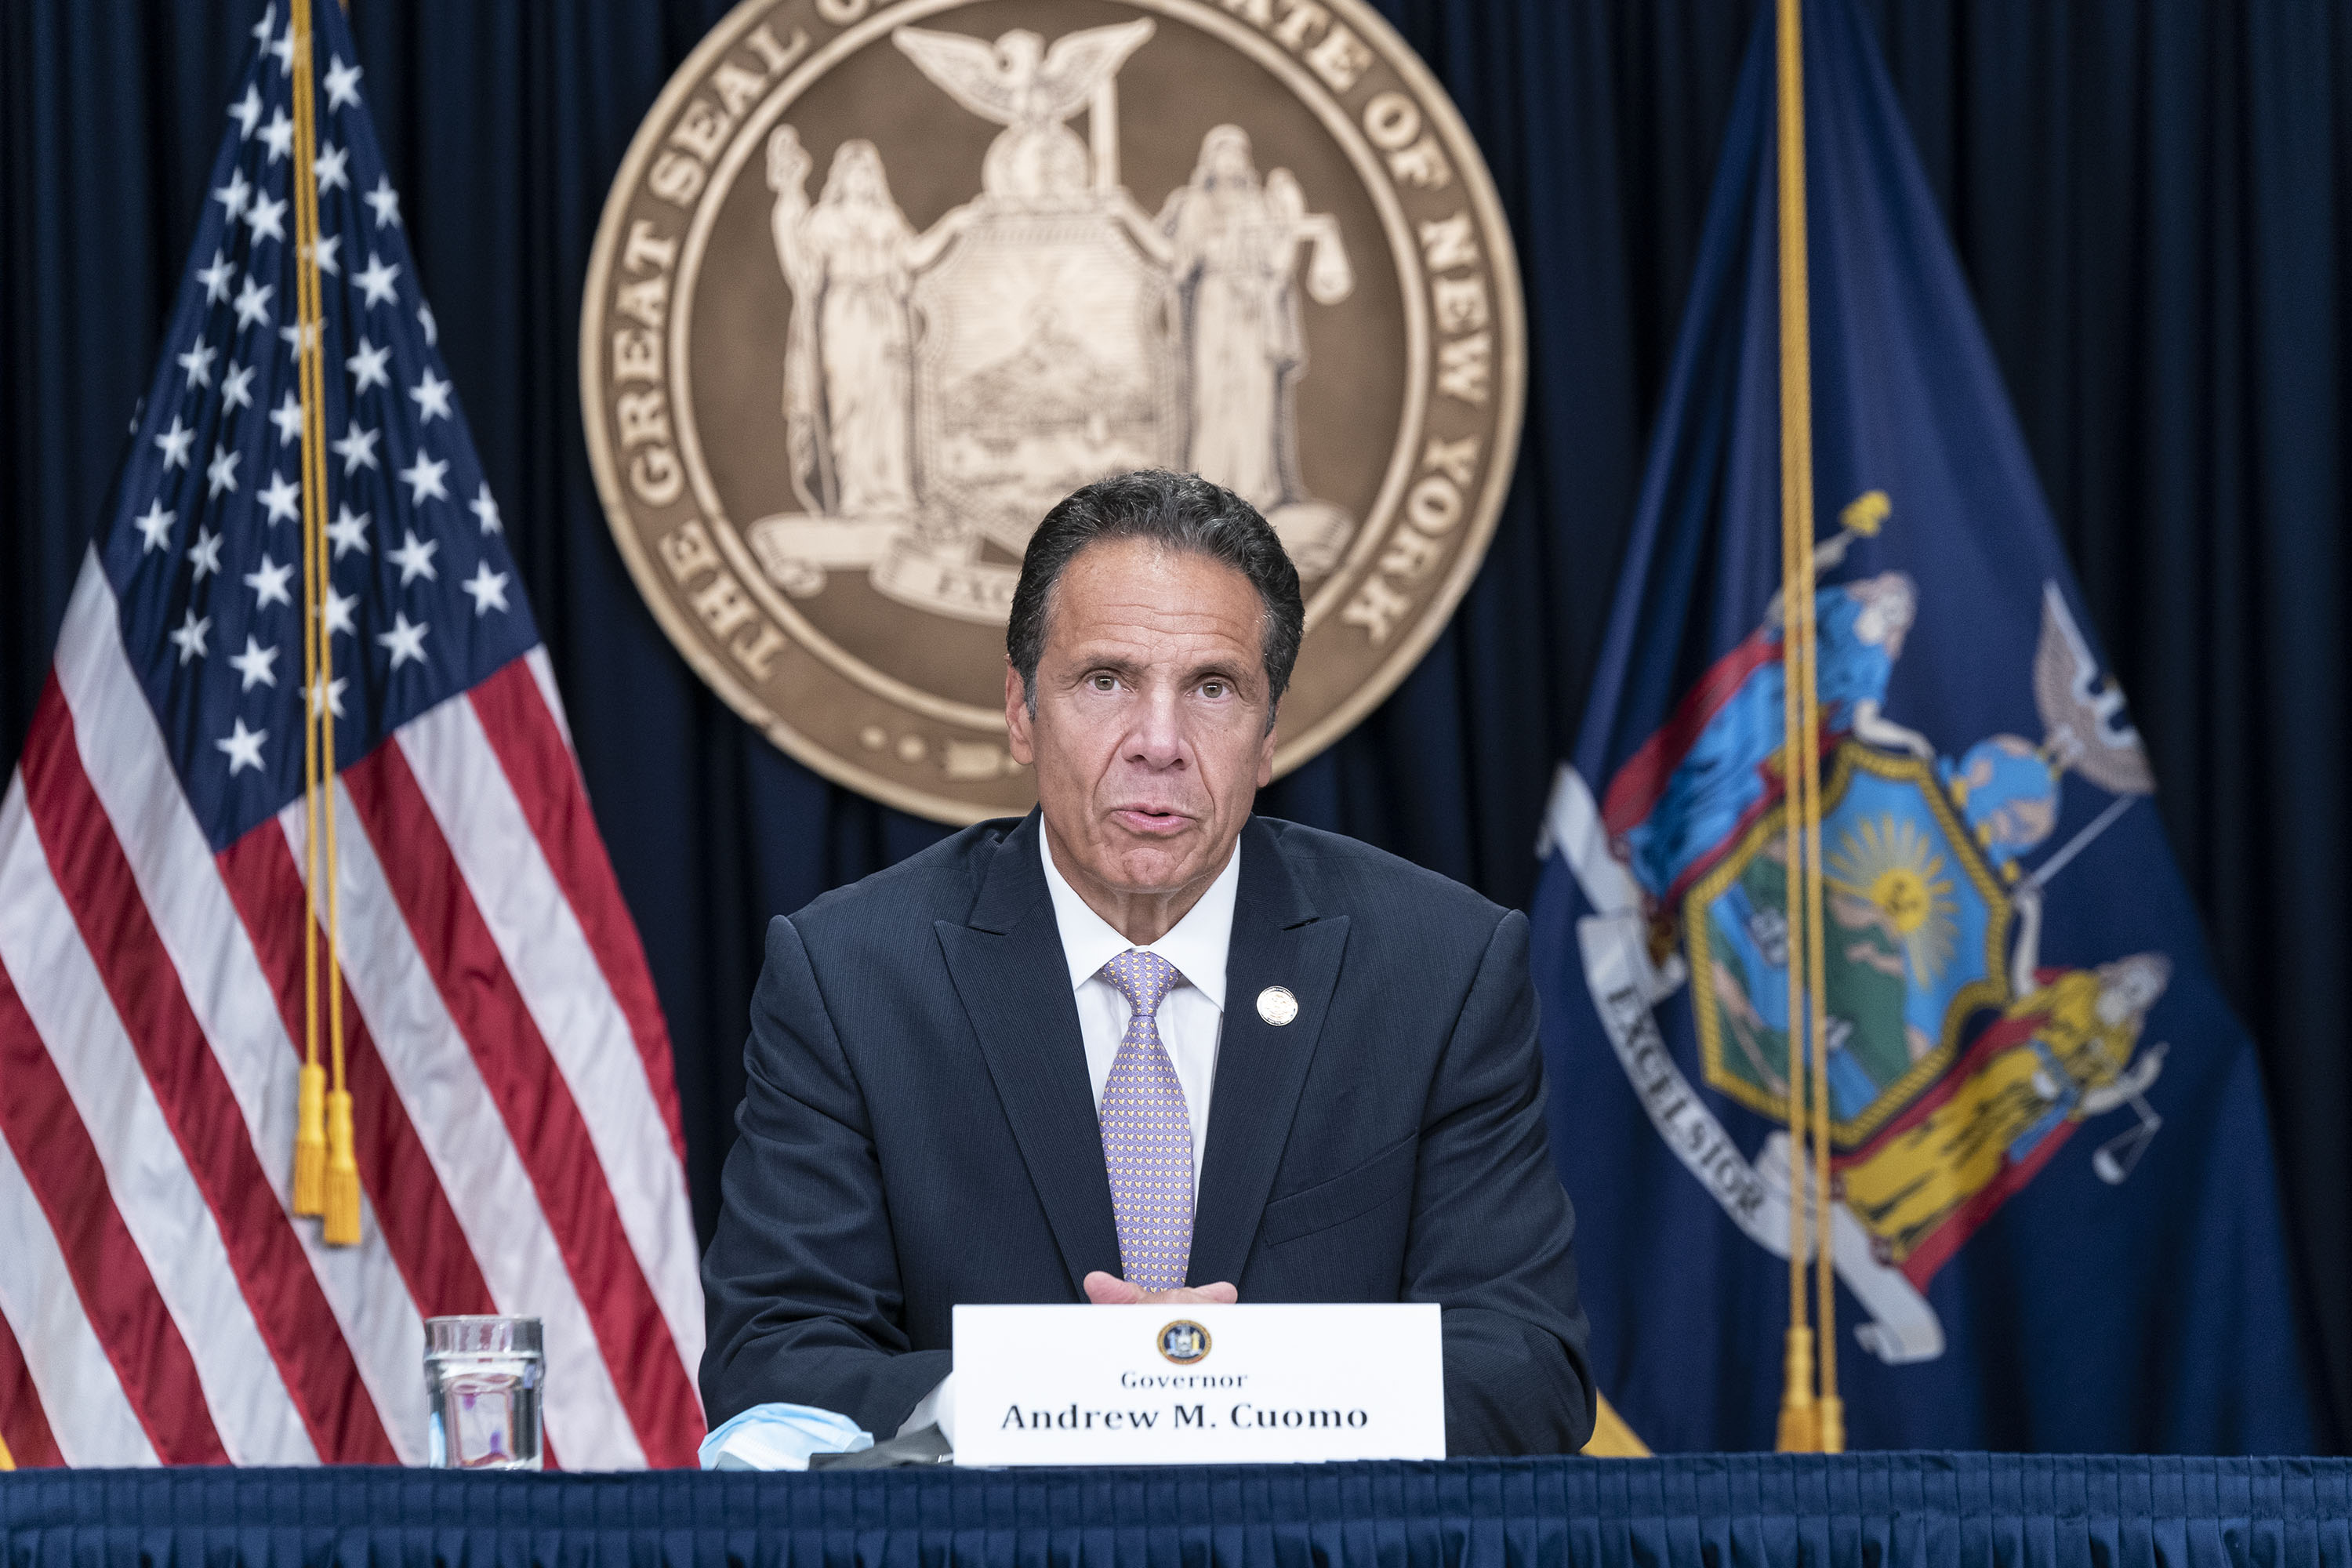 56 The New York Governor Is Traveling To Georgia To Help With Coronavirus Response